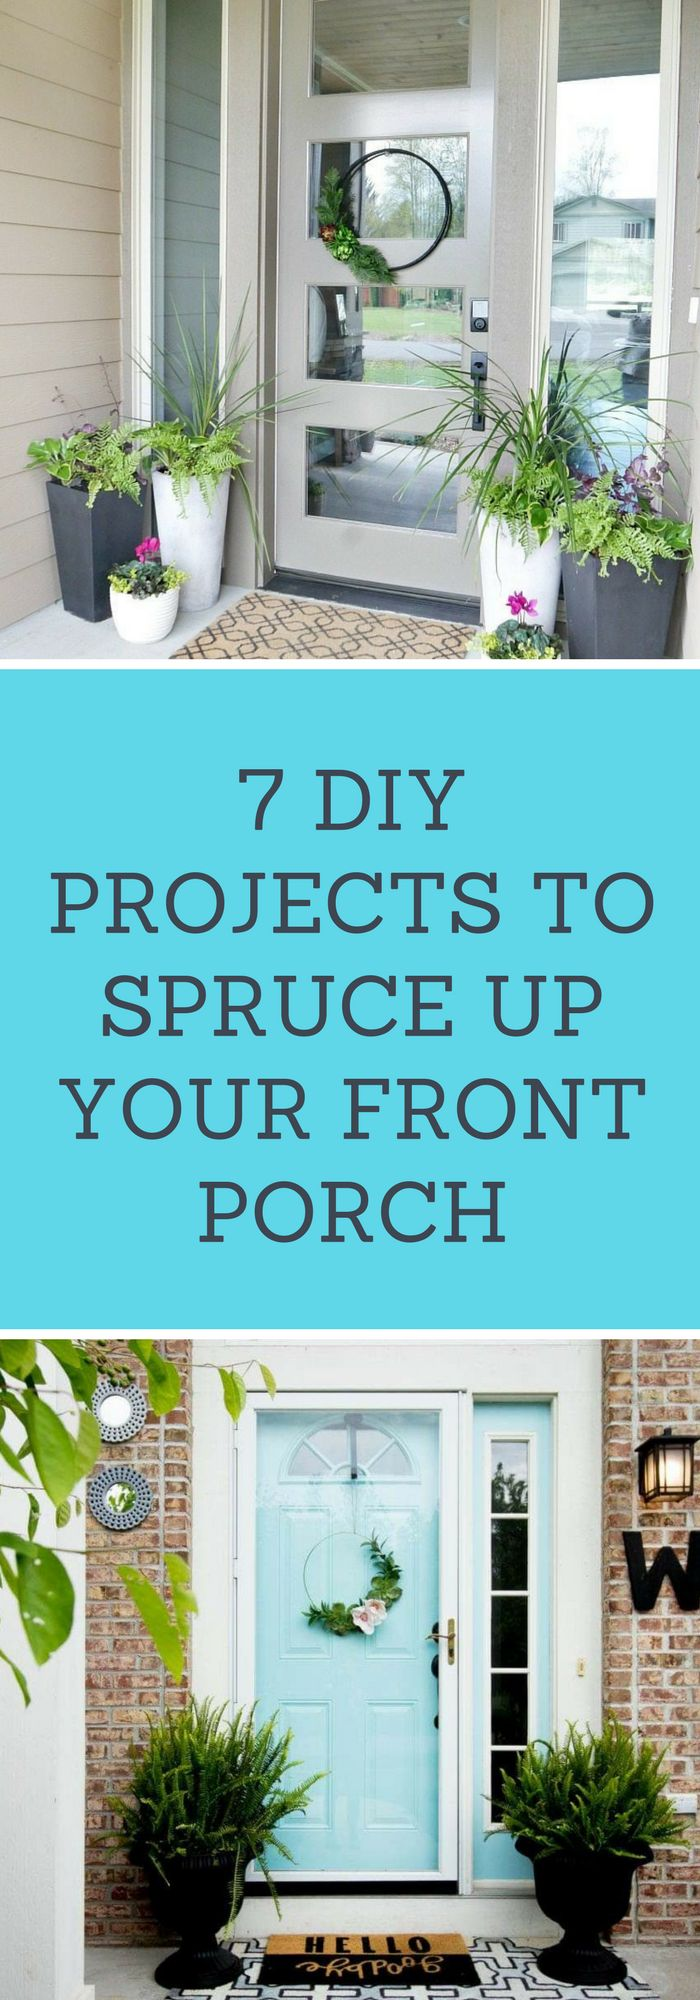 DIY--7 DIY Projects to Spruce Up Your Front Porch--The Organized Mom